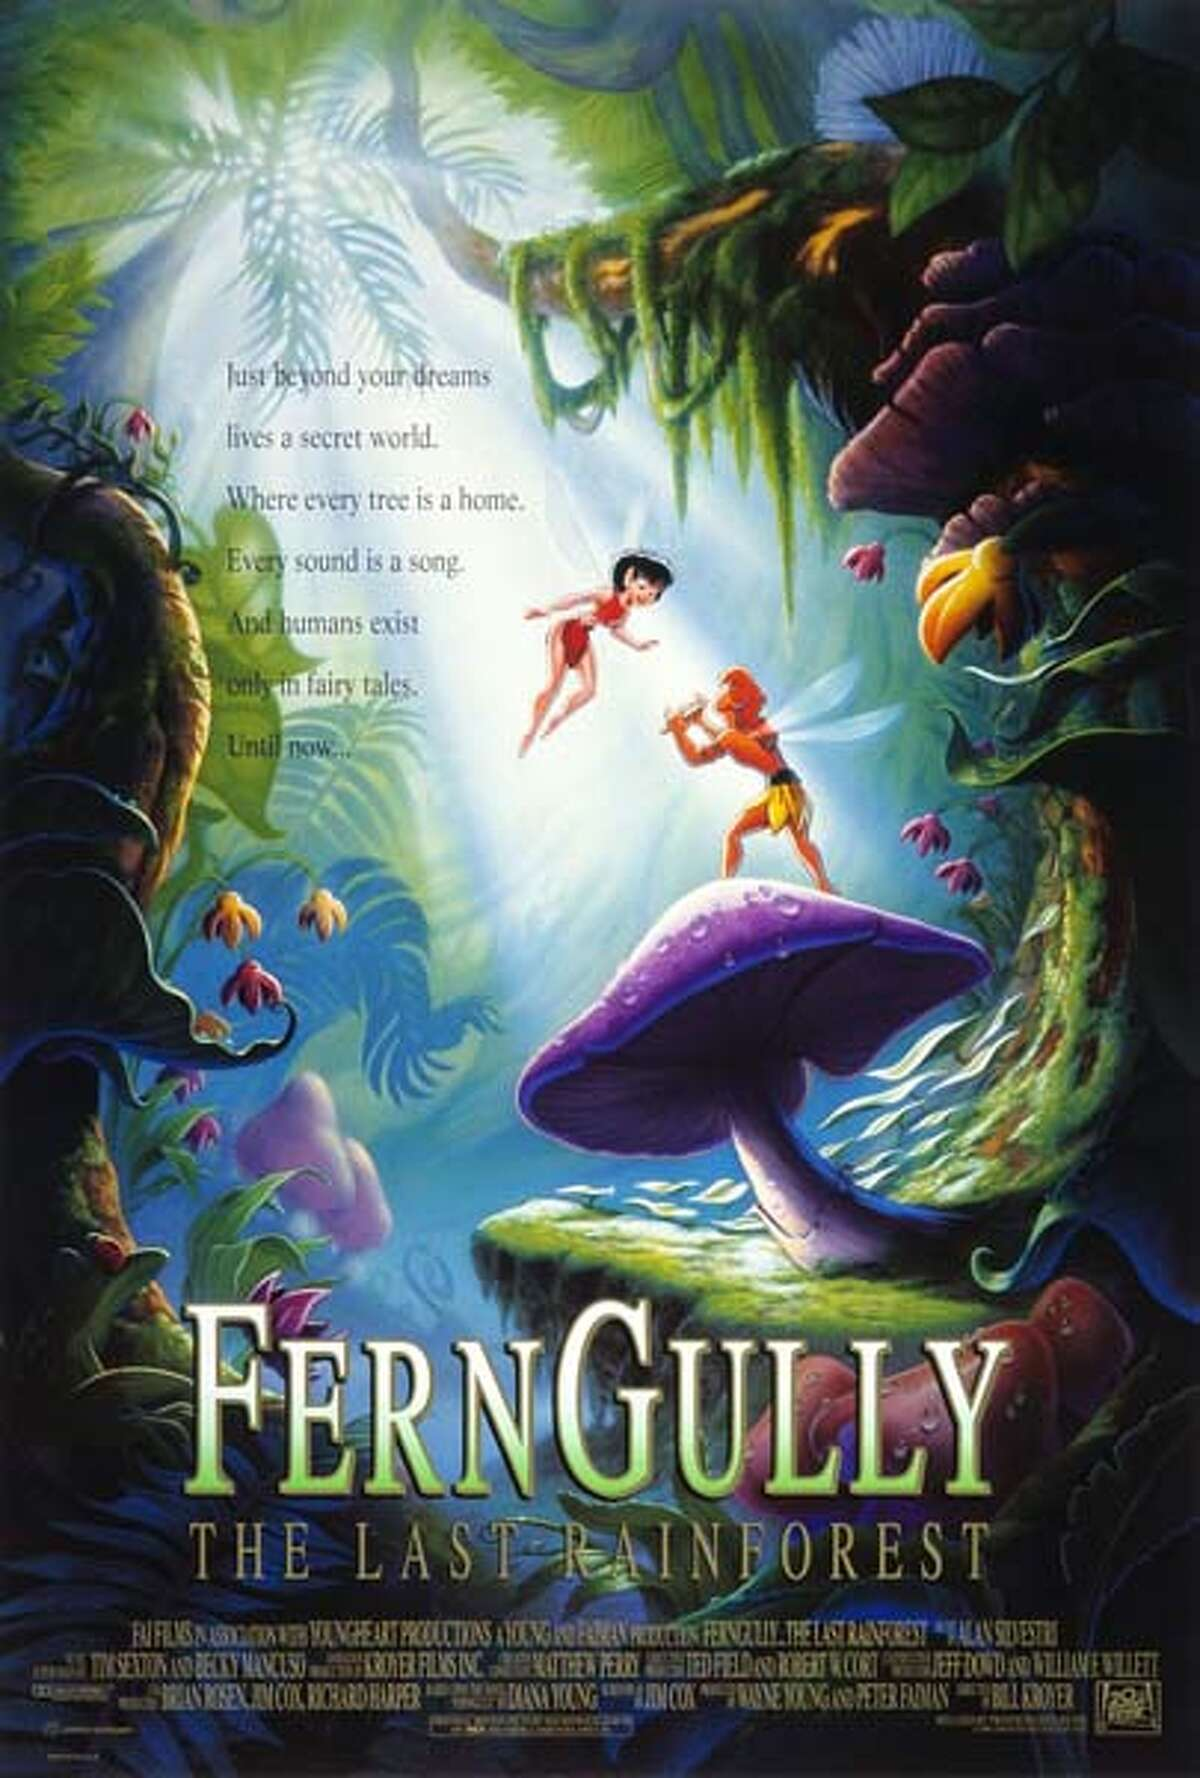 Fern Gully: The Last Rainforest (1992) Leaving Netflix March 1The magical inhabitants of a rainforest fight to save their home, which is threatened by logging and a polluting force of destruction called Hexxus.